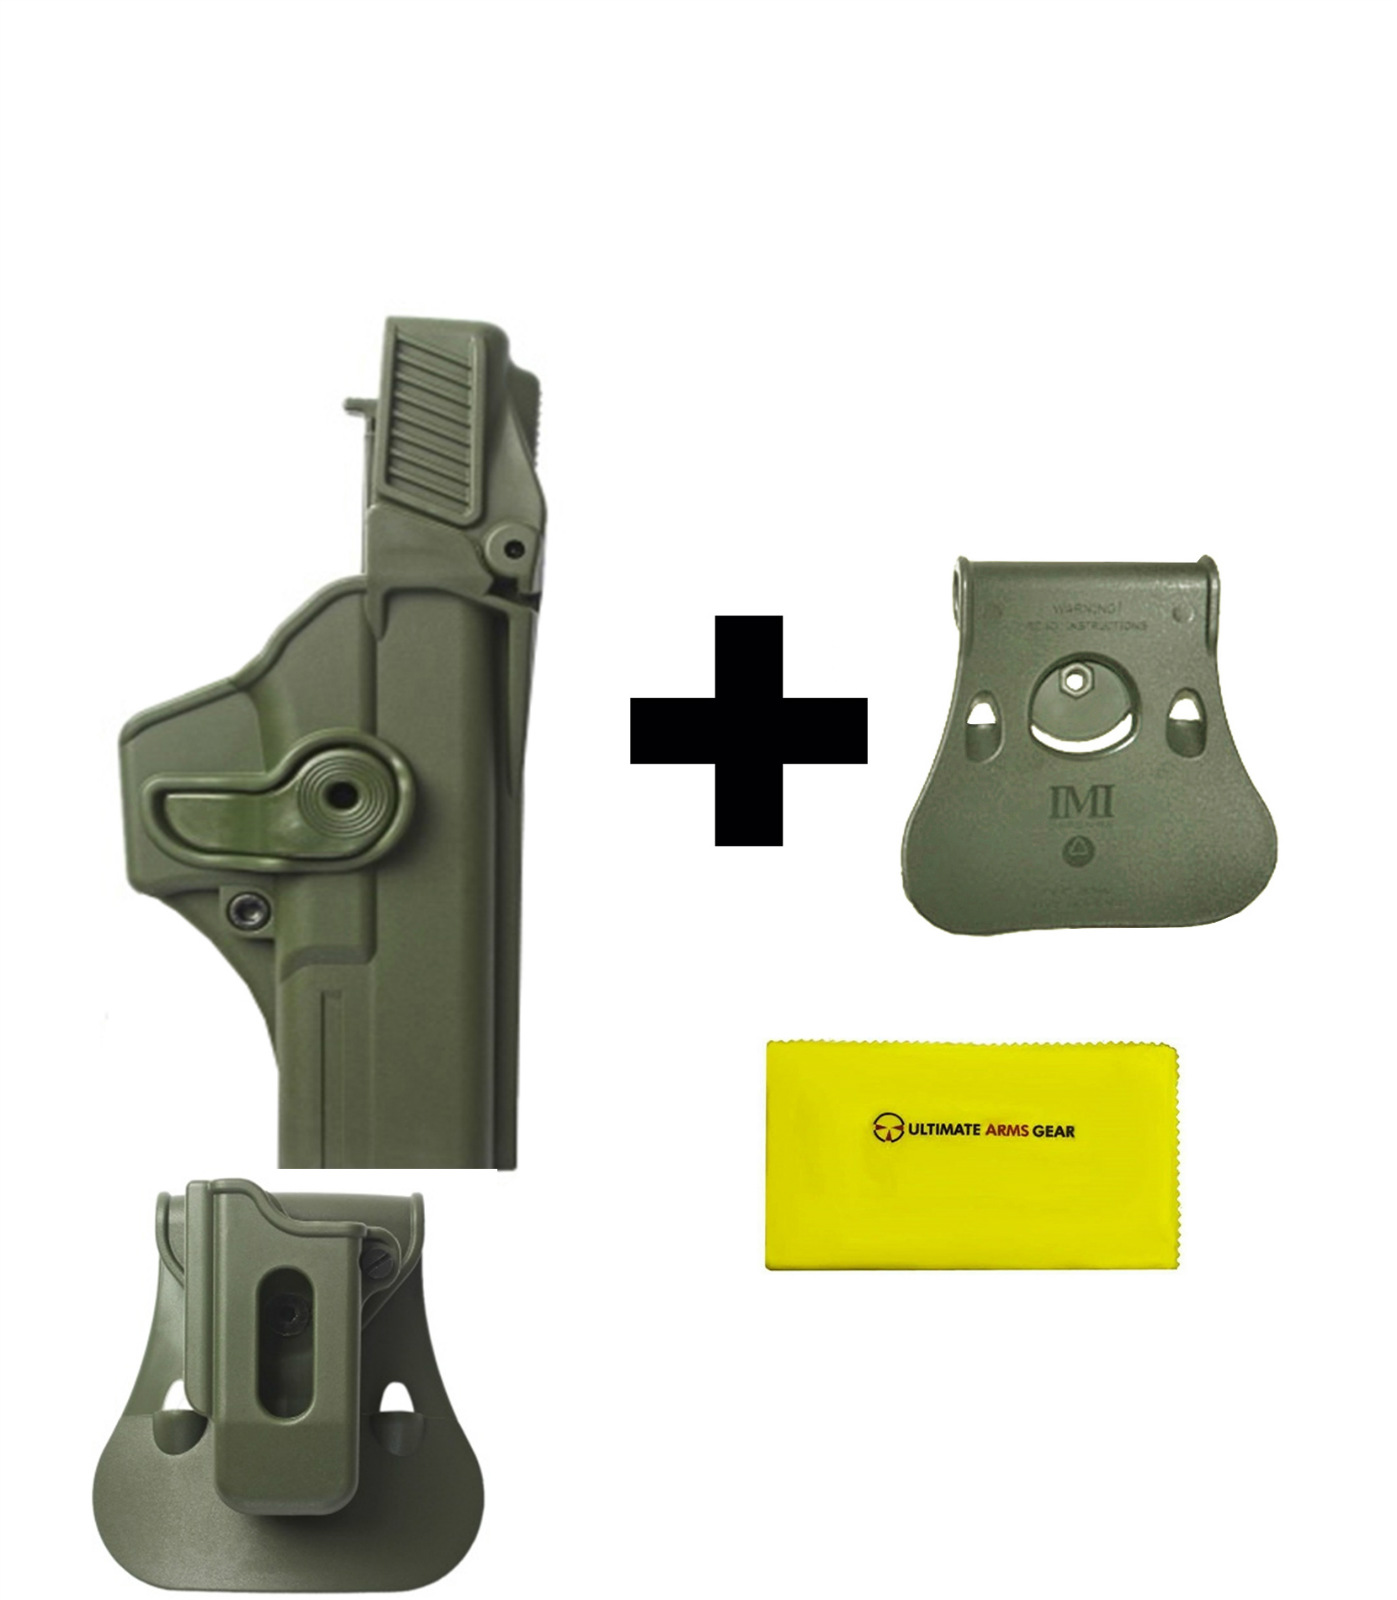 IMI Defense ZSP08 Single Mag Pouch & Paddle + Z1410 Level 3 360� Rotate Holster Glock 17 22 31 Gen 4, OD + Paddle Roto... by